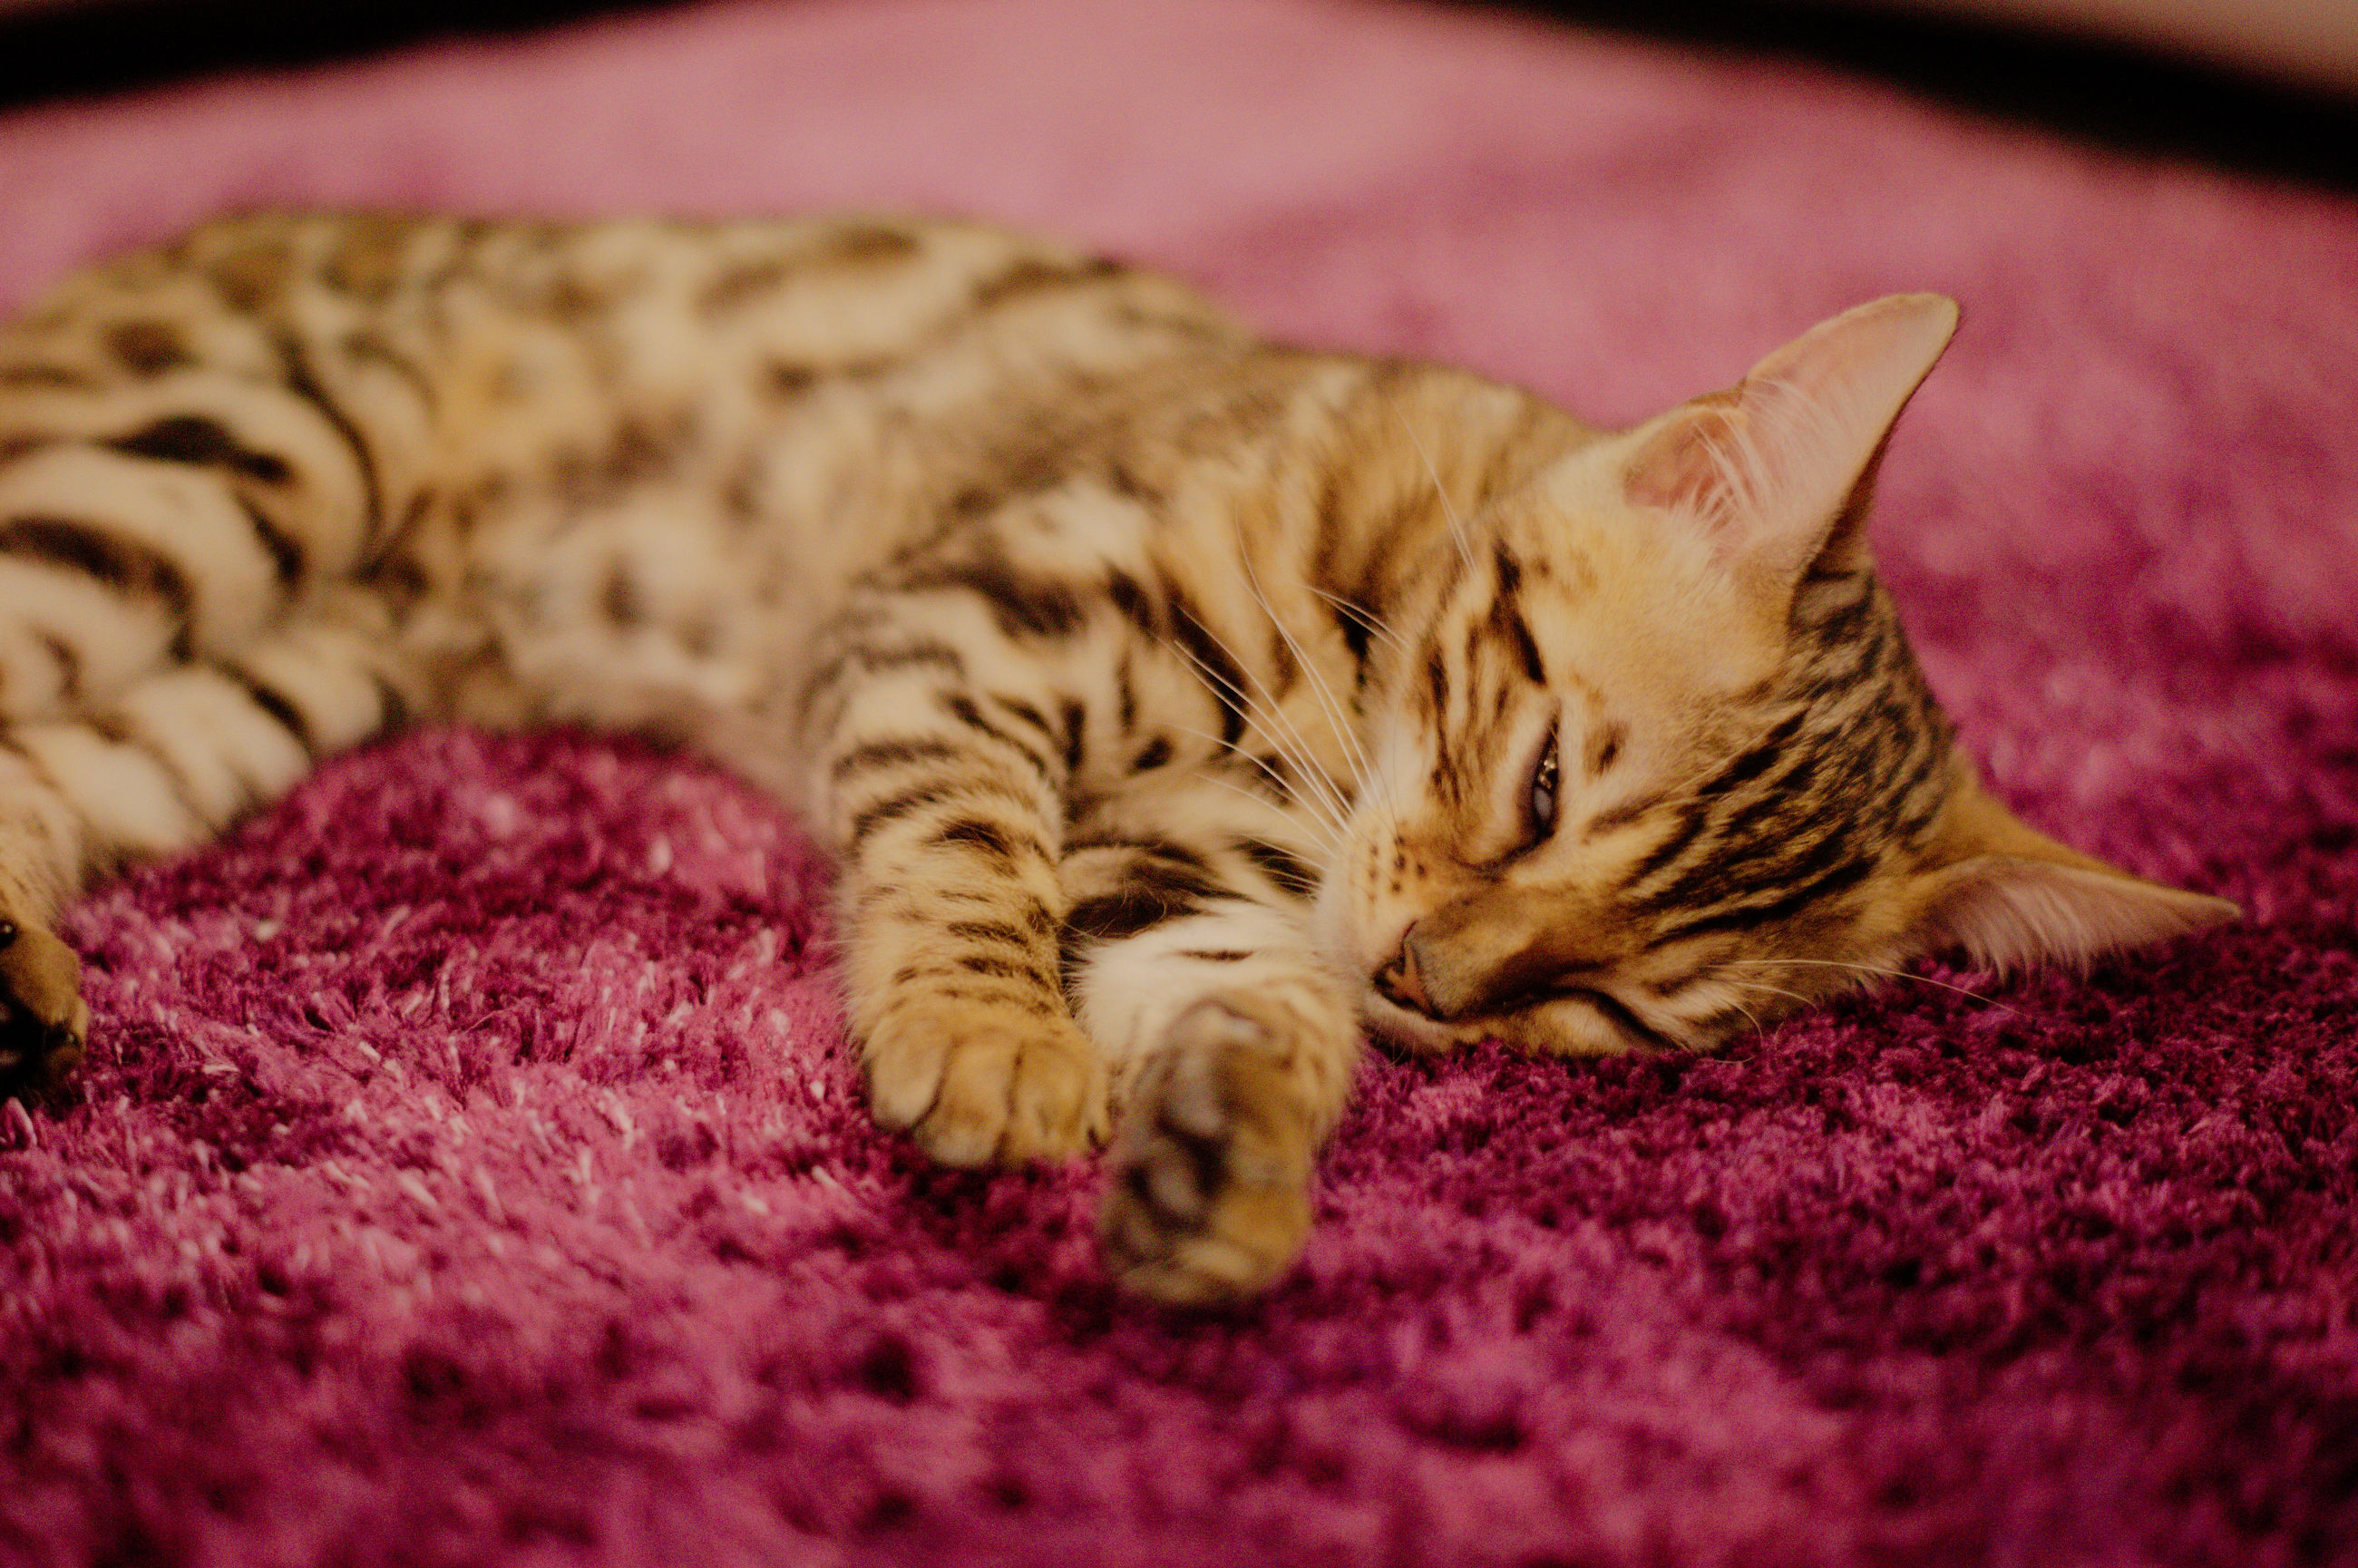 animal themes, animal, cat, pet, mammal, one animal, feline, domestic animals, relaxation, domestic cat, felidae, lying down, whiskers, sleeping, small to medium-sized cats, kitten, no people, close-up, resting, indoors, carpet, eyes closed, tabby cat, selective focus, rug, carnivore, skin, furniture